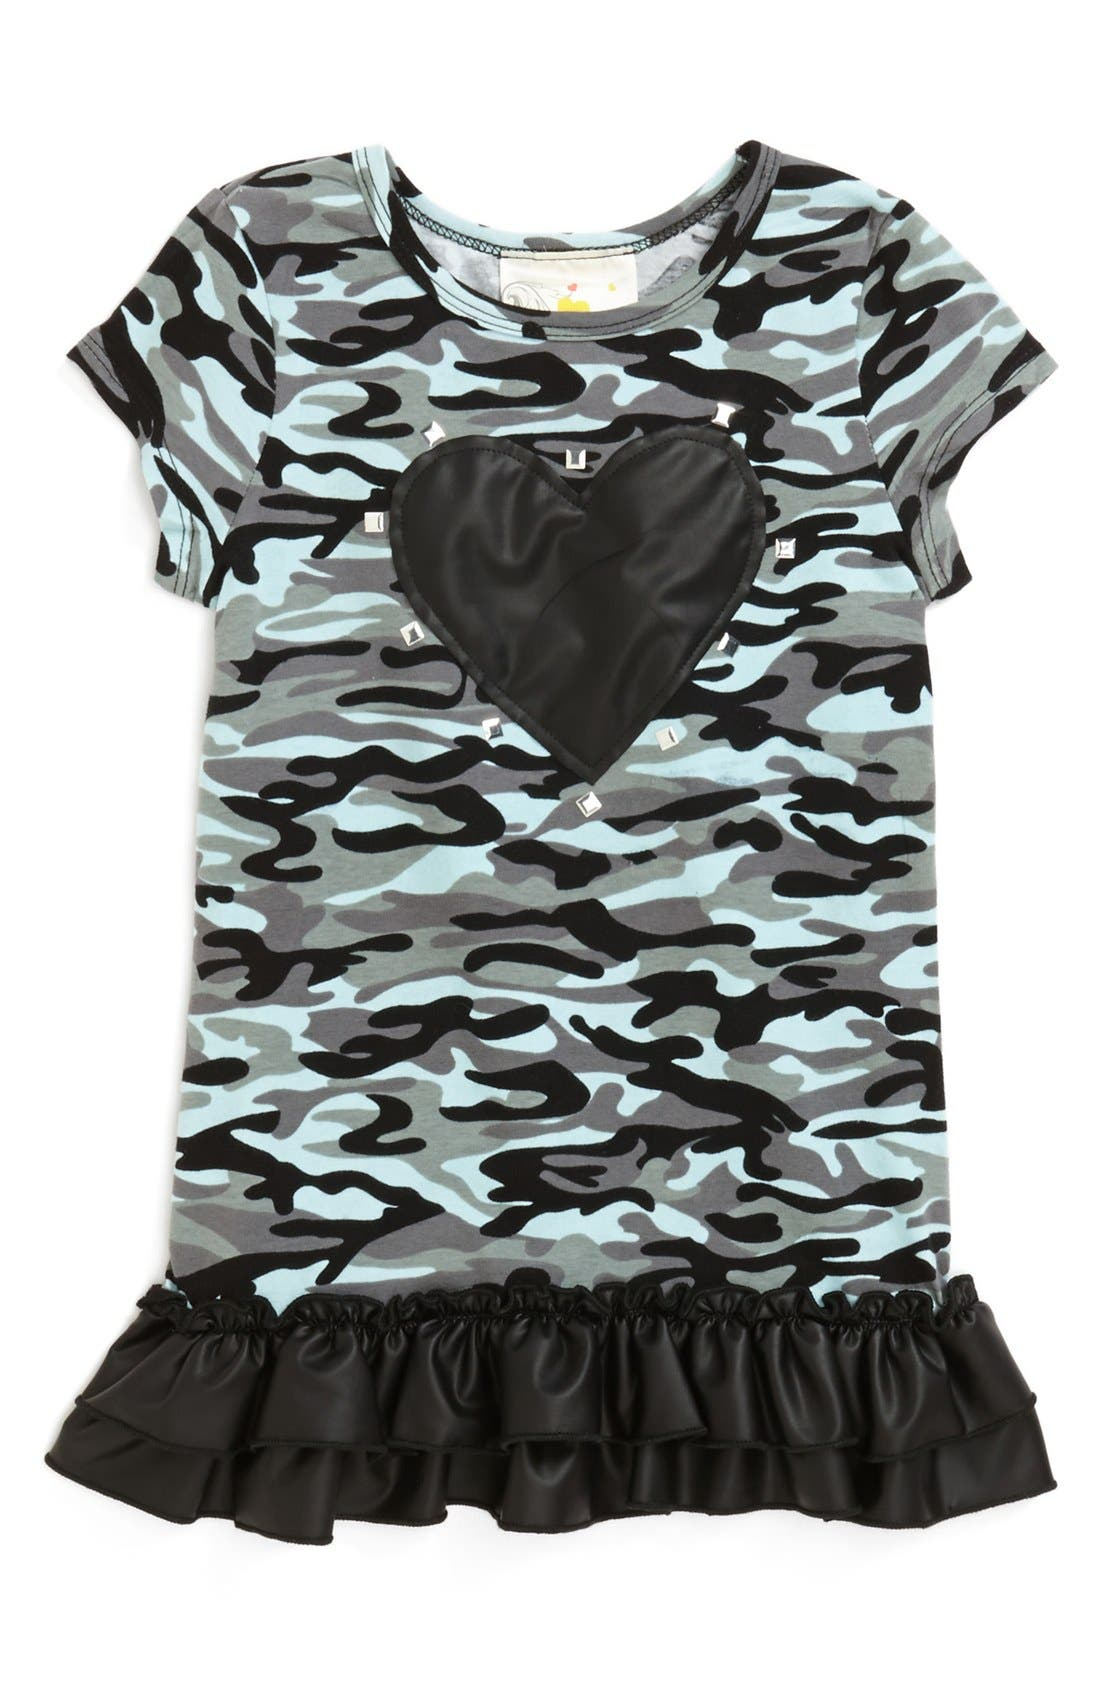 Alternate Image 1 Selected - Jenna & Jessie Camo Print Tee (Little Girls)